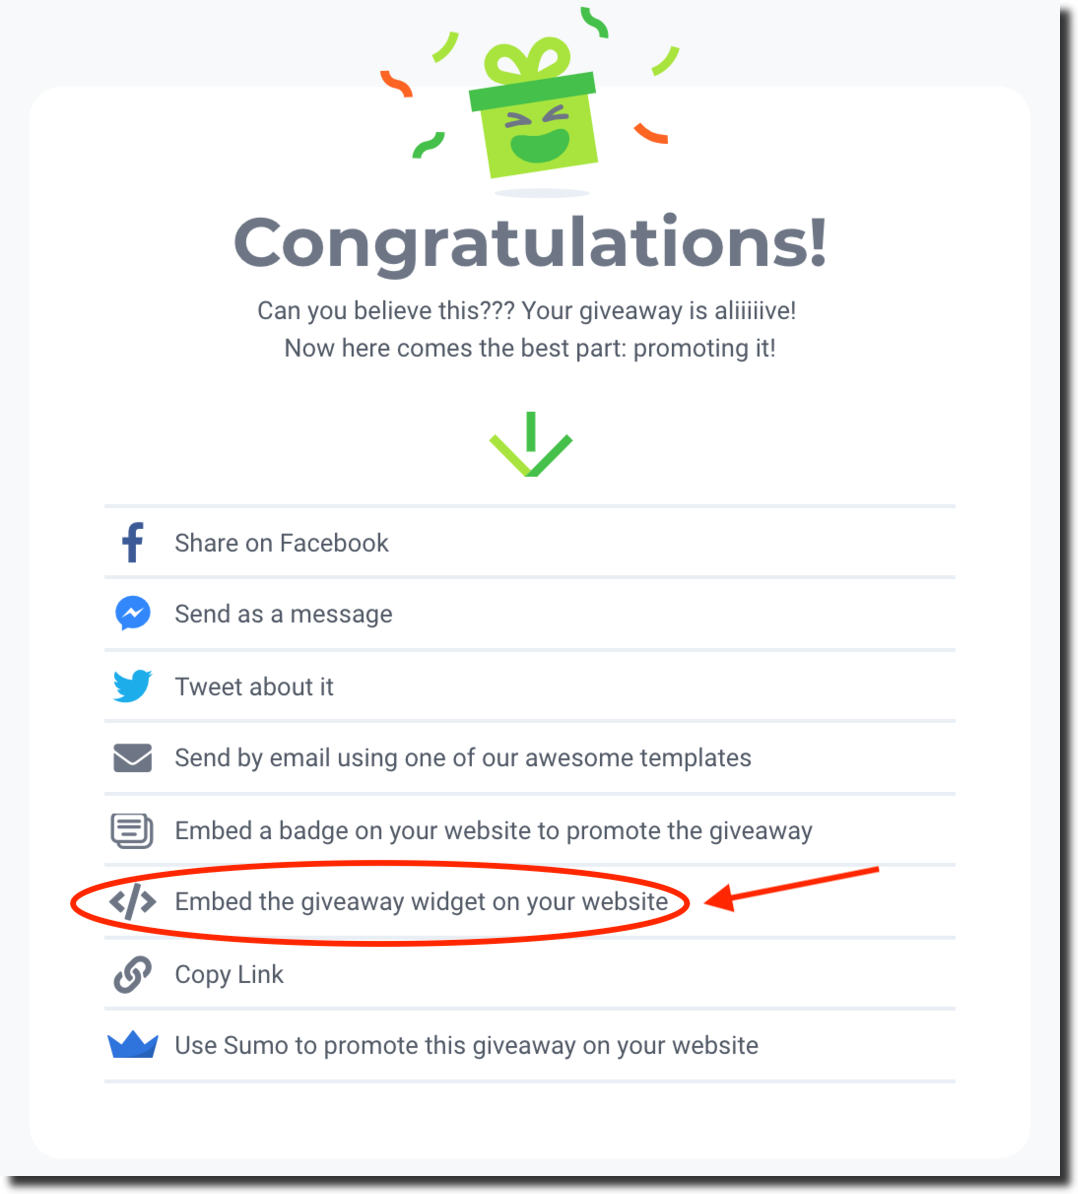 kingsumo email broadcast giveawaytips embed